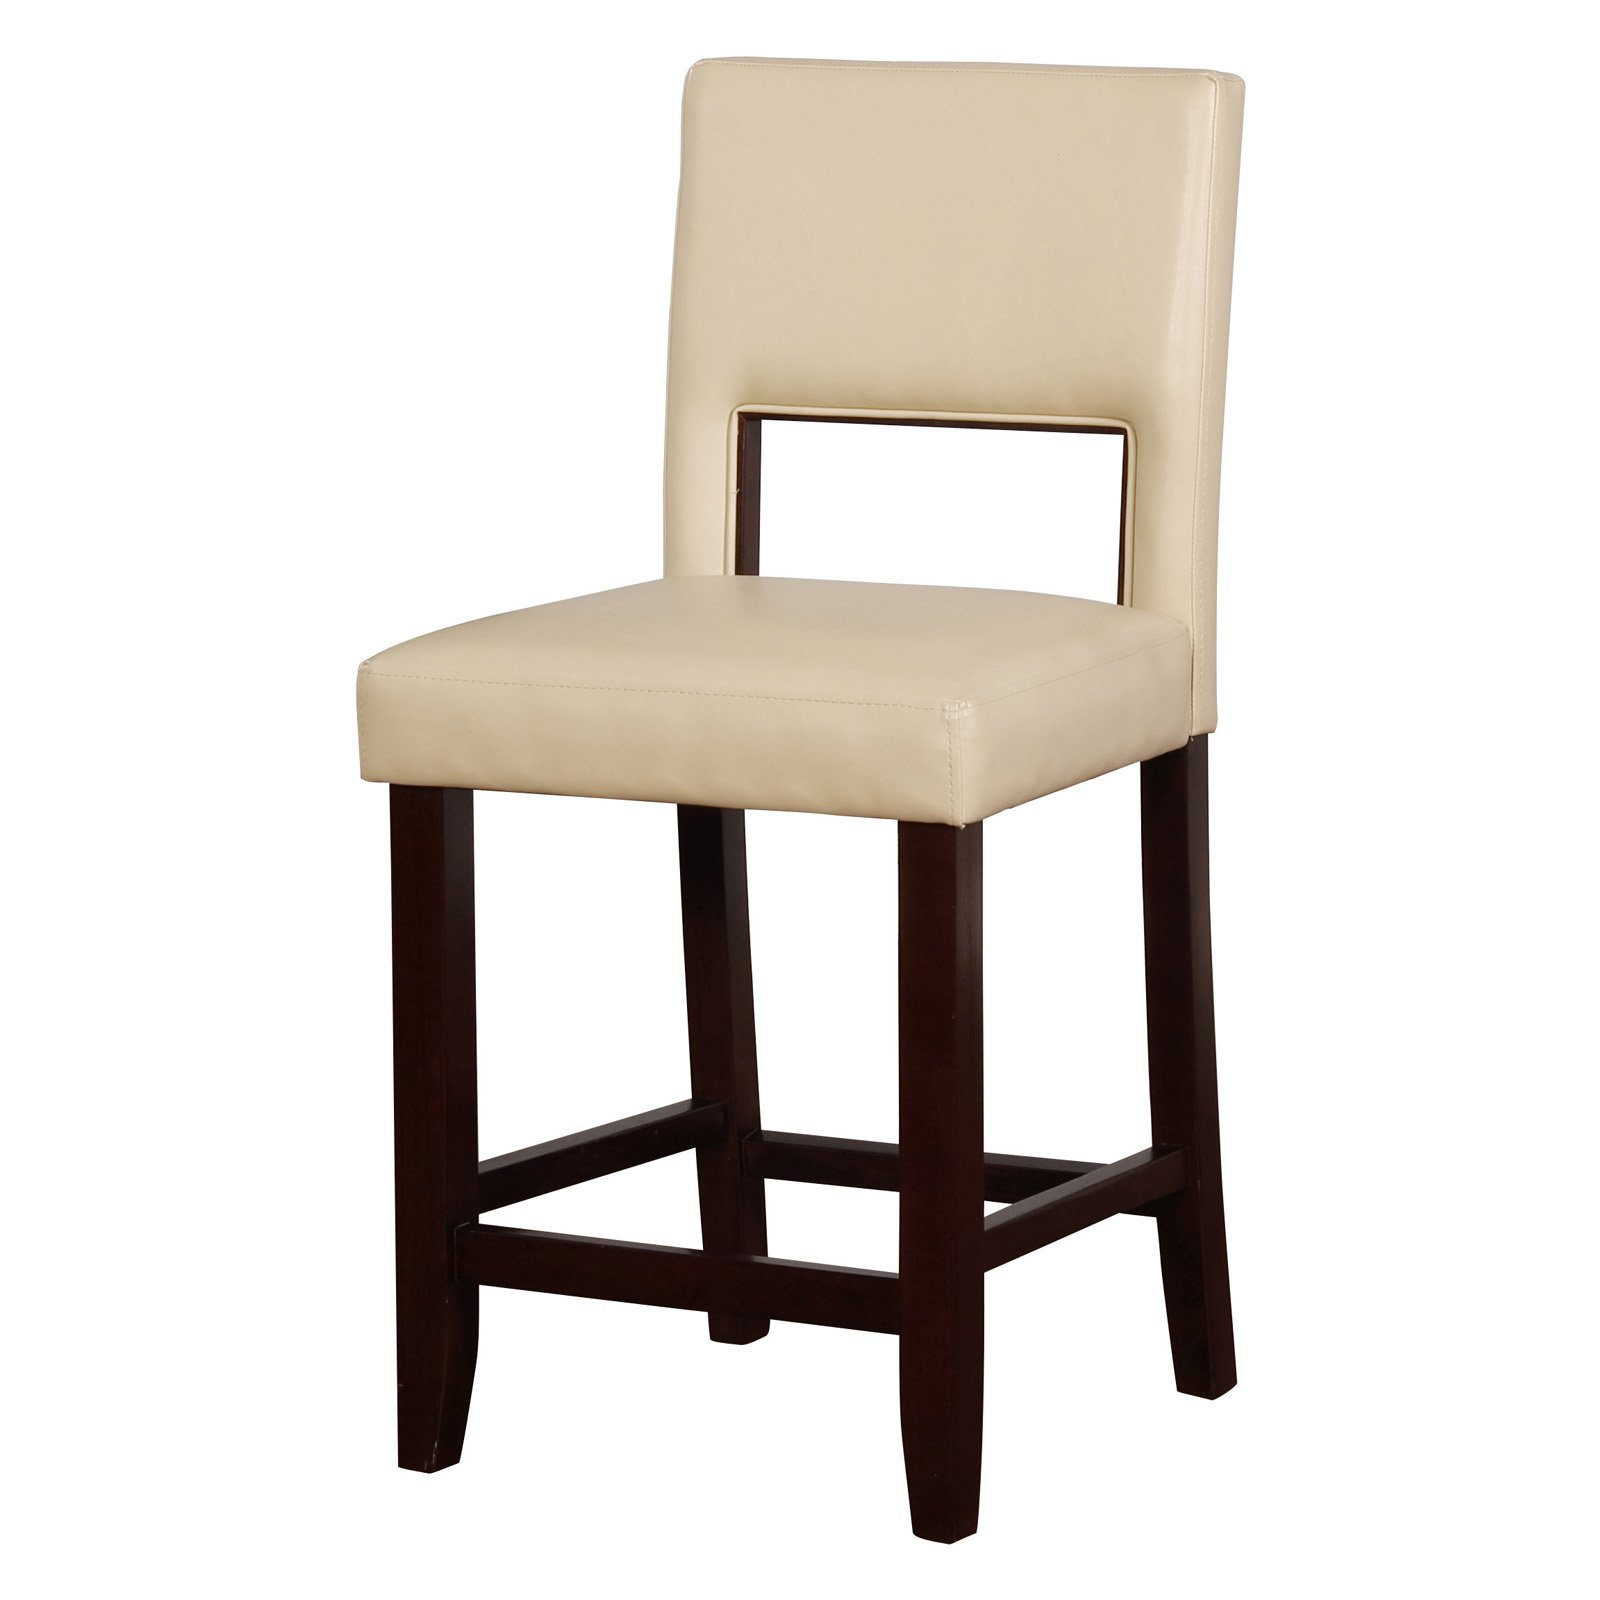 Linon Velma Counter Stool, 24 inch Seat Height, Multiple Colors